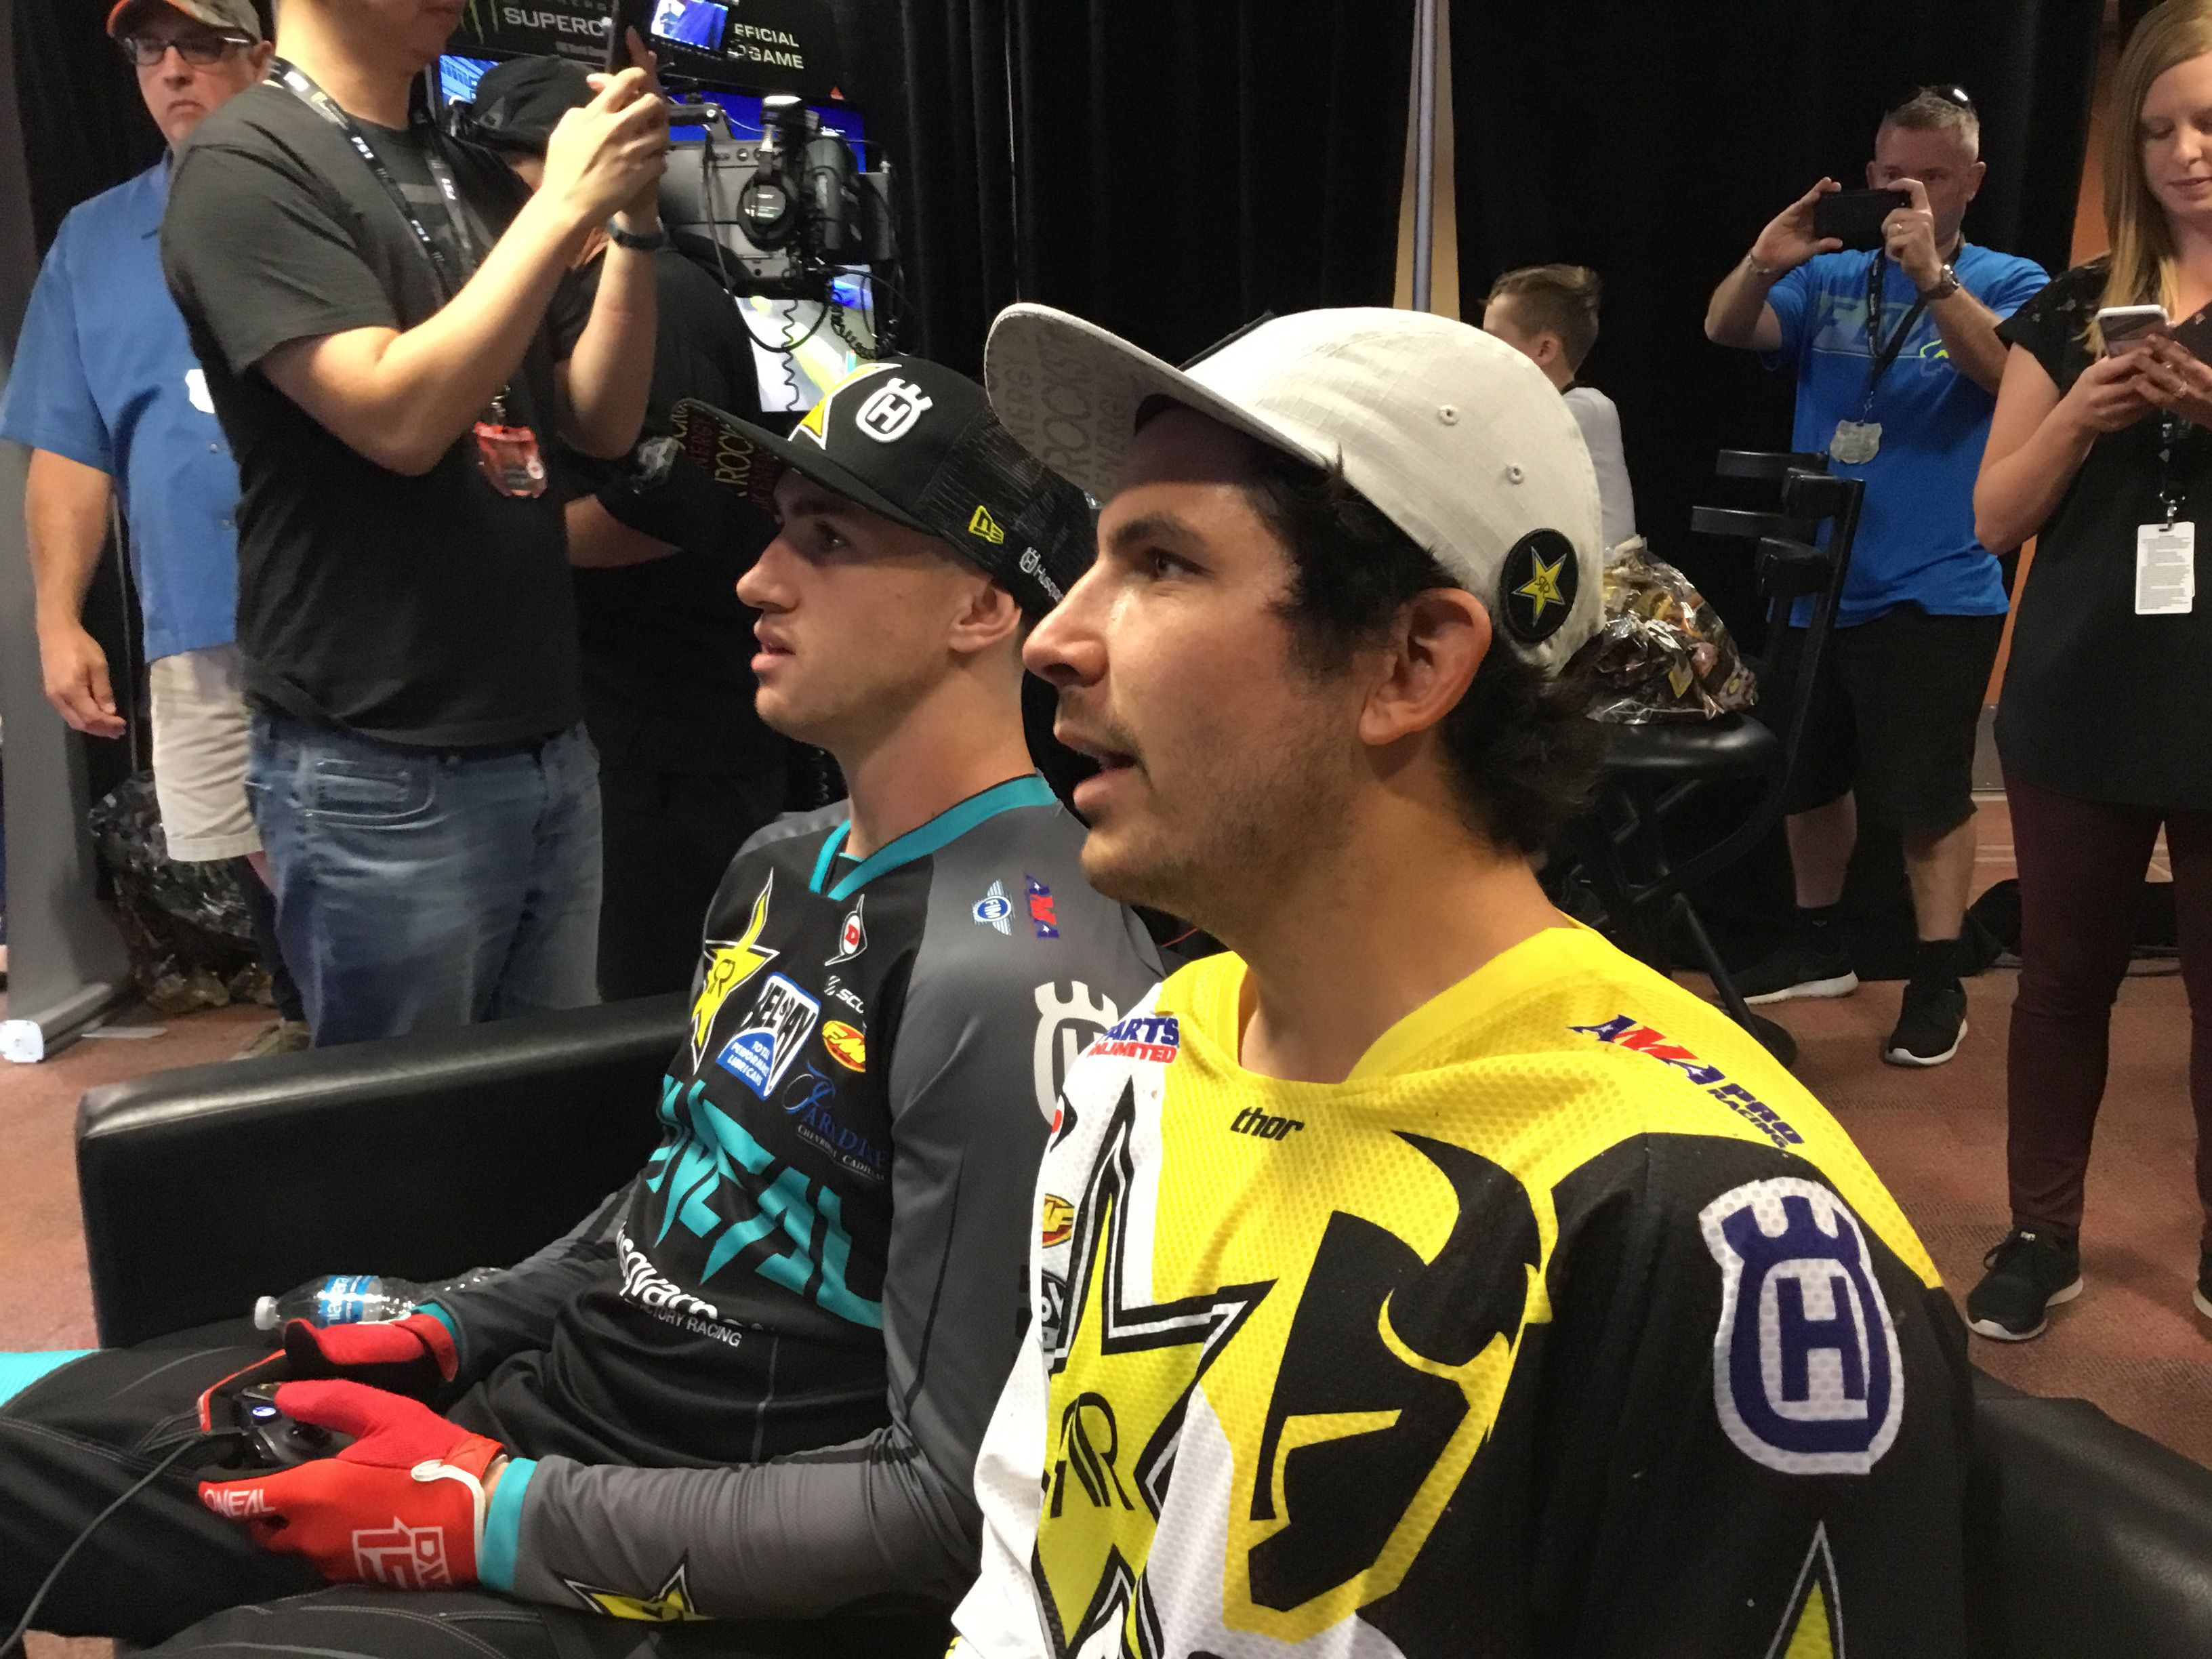 Beef, booze, and bikes How Supercross the game made me a